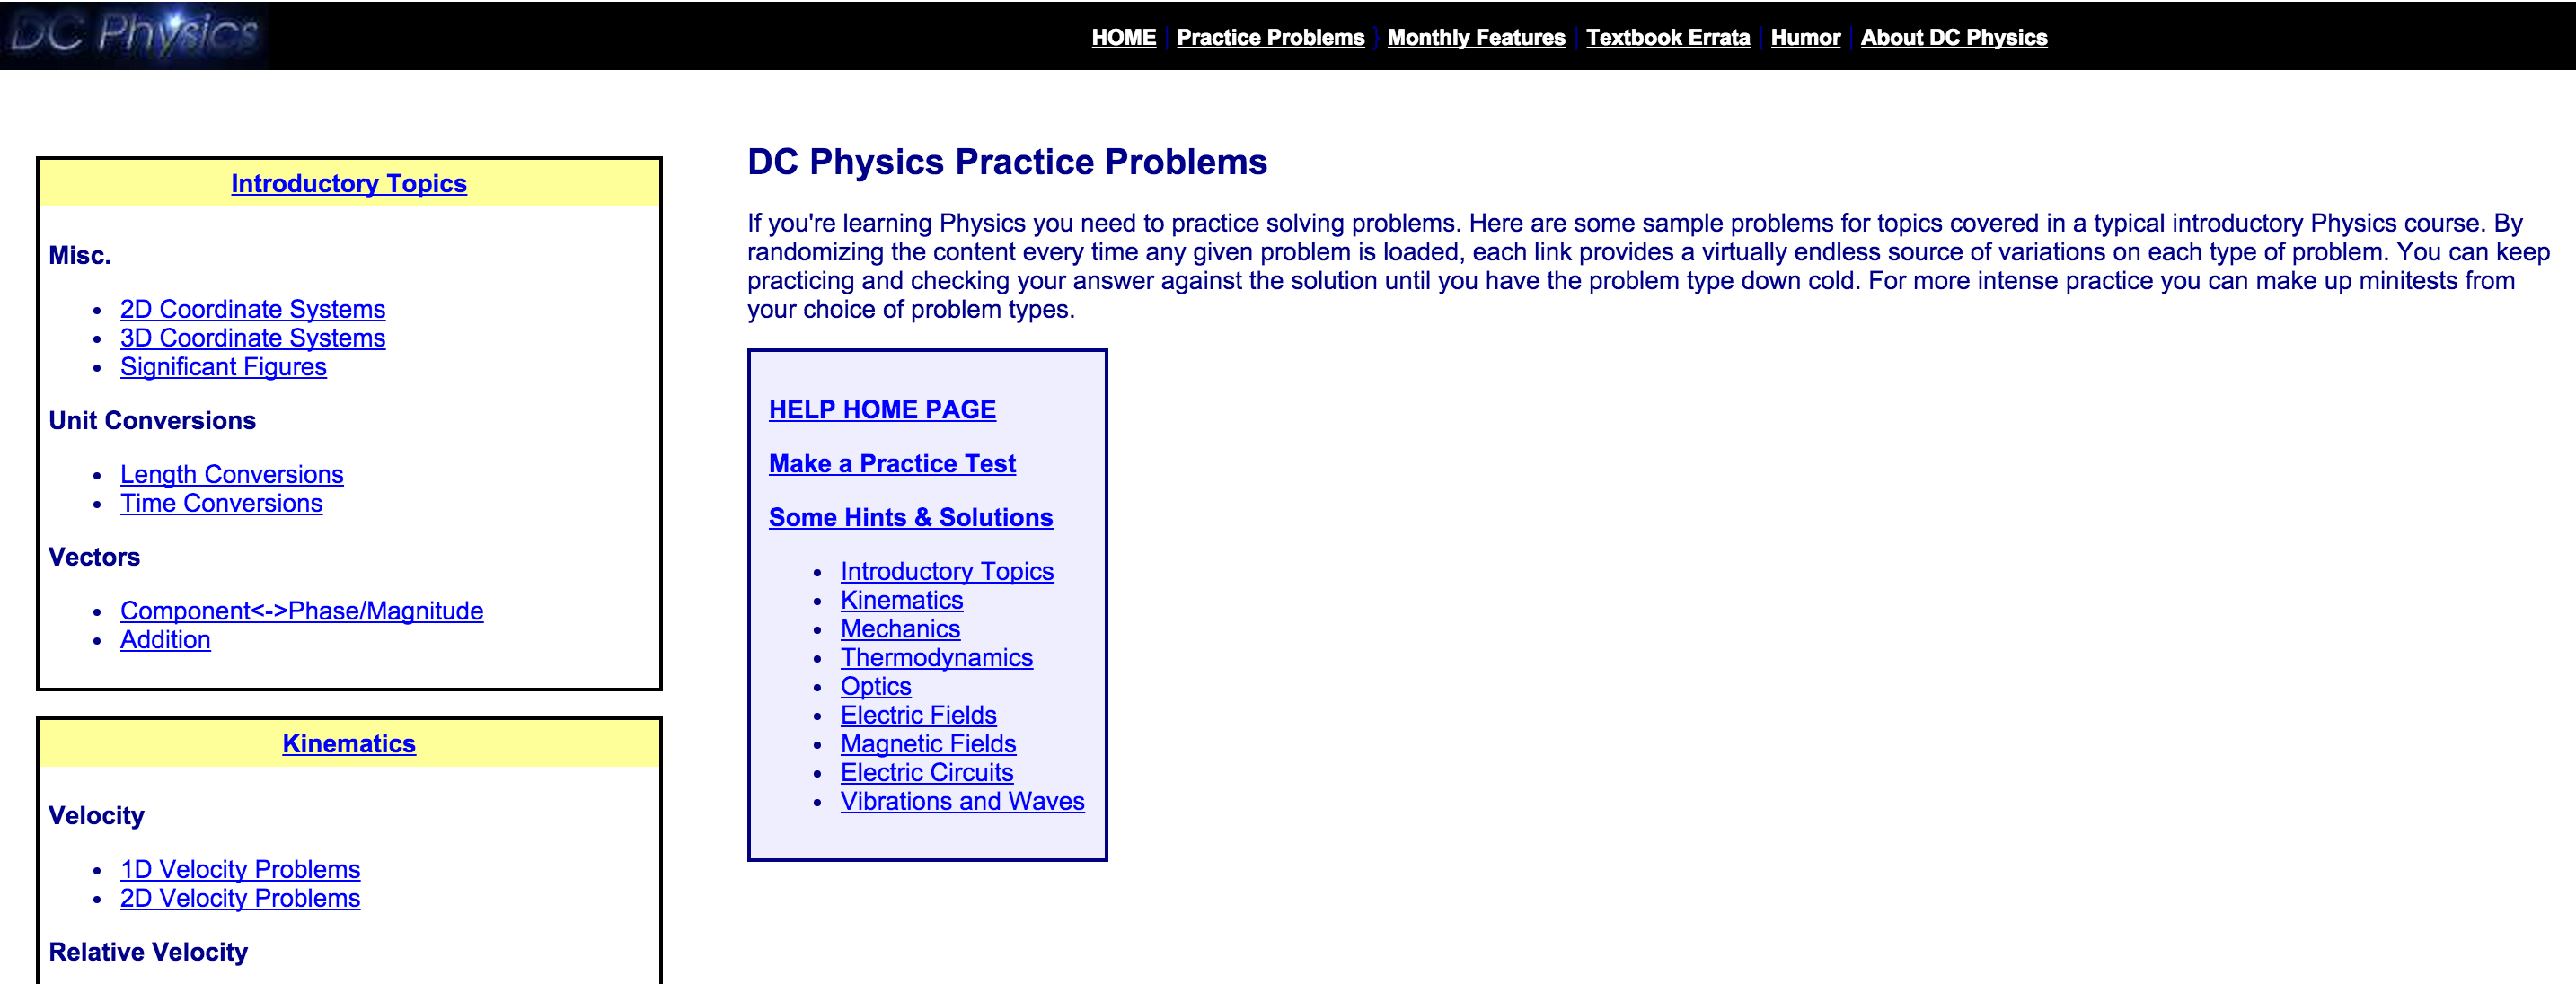 Physics practice problems